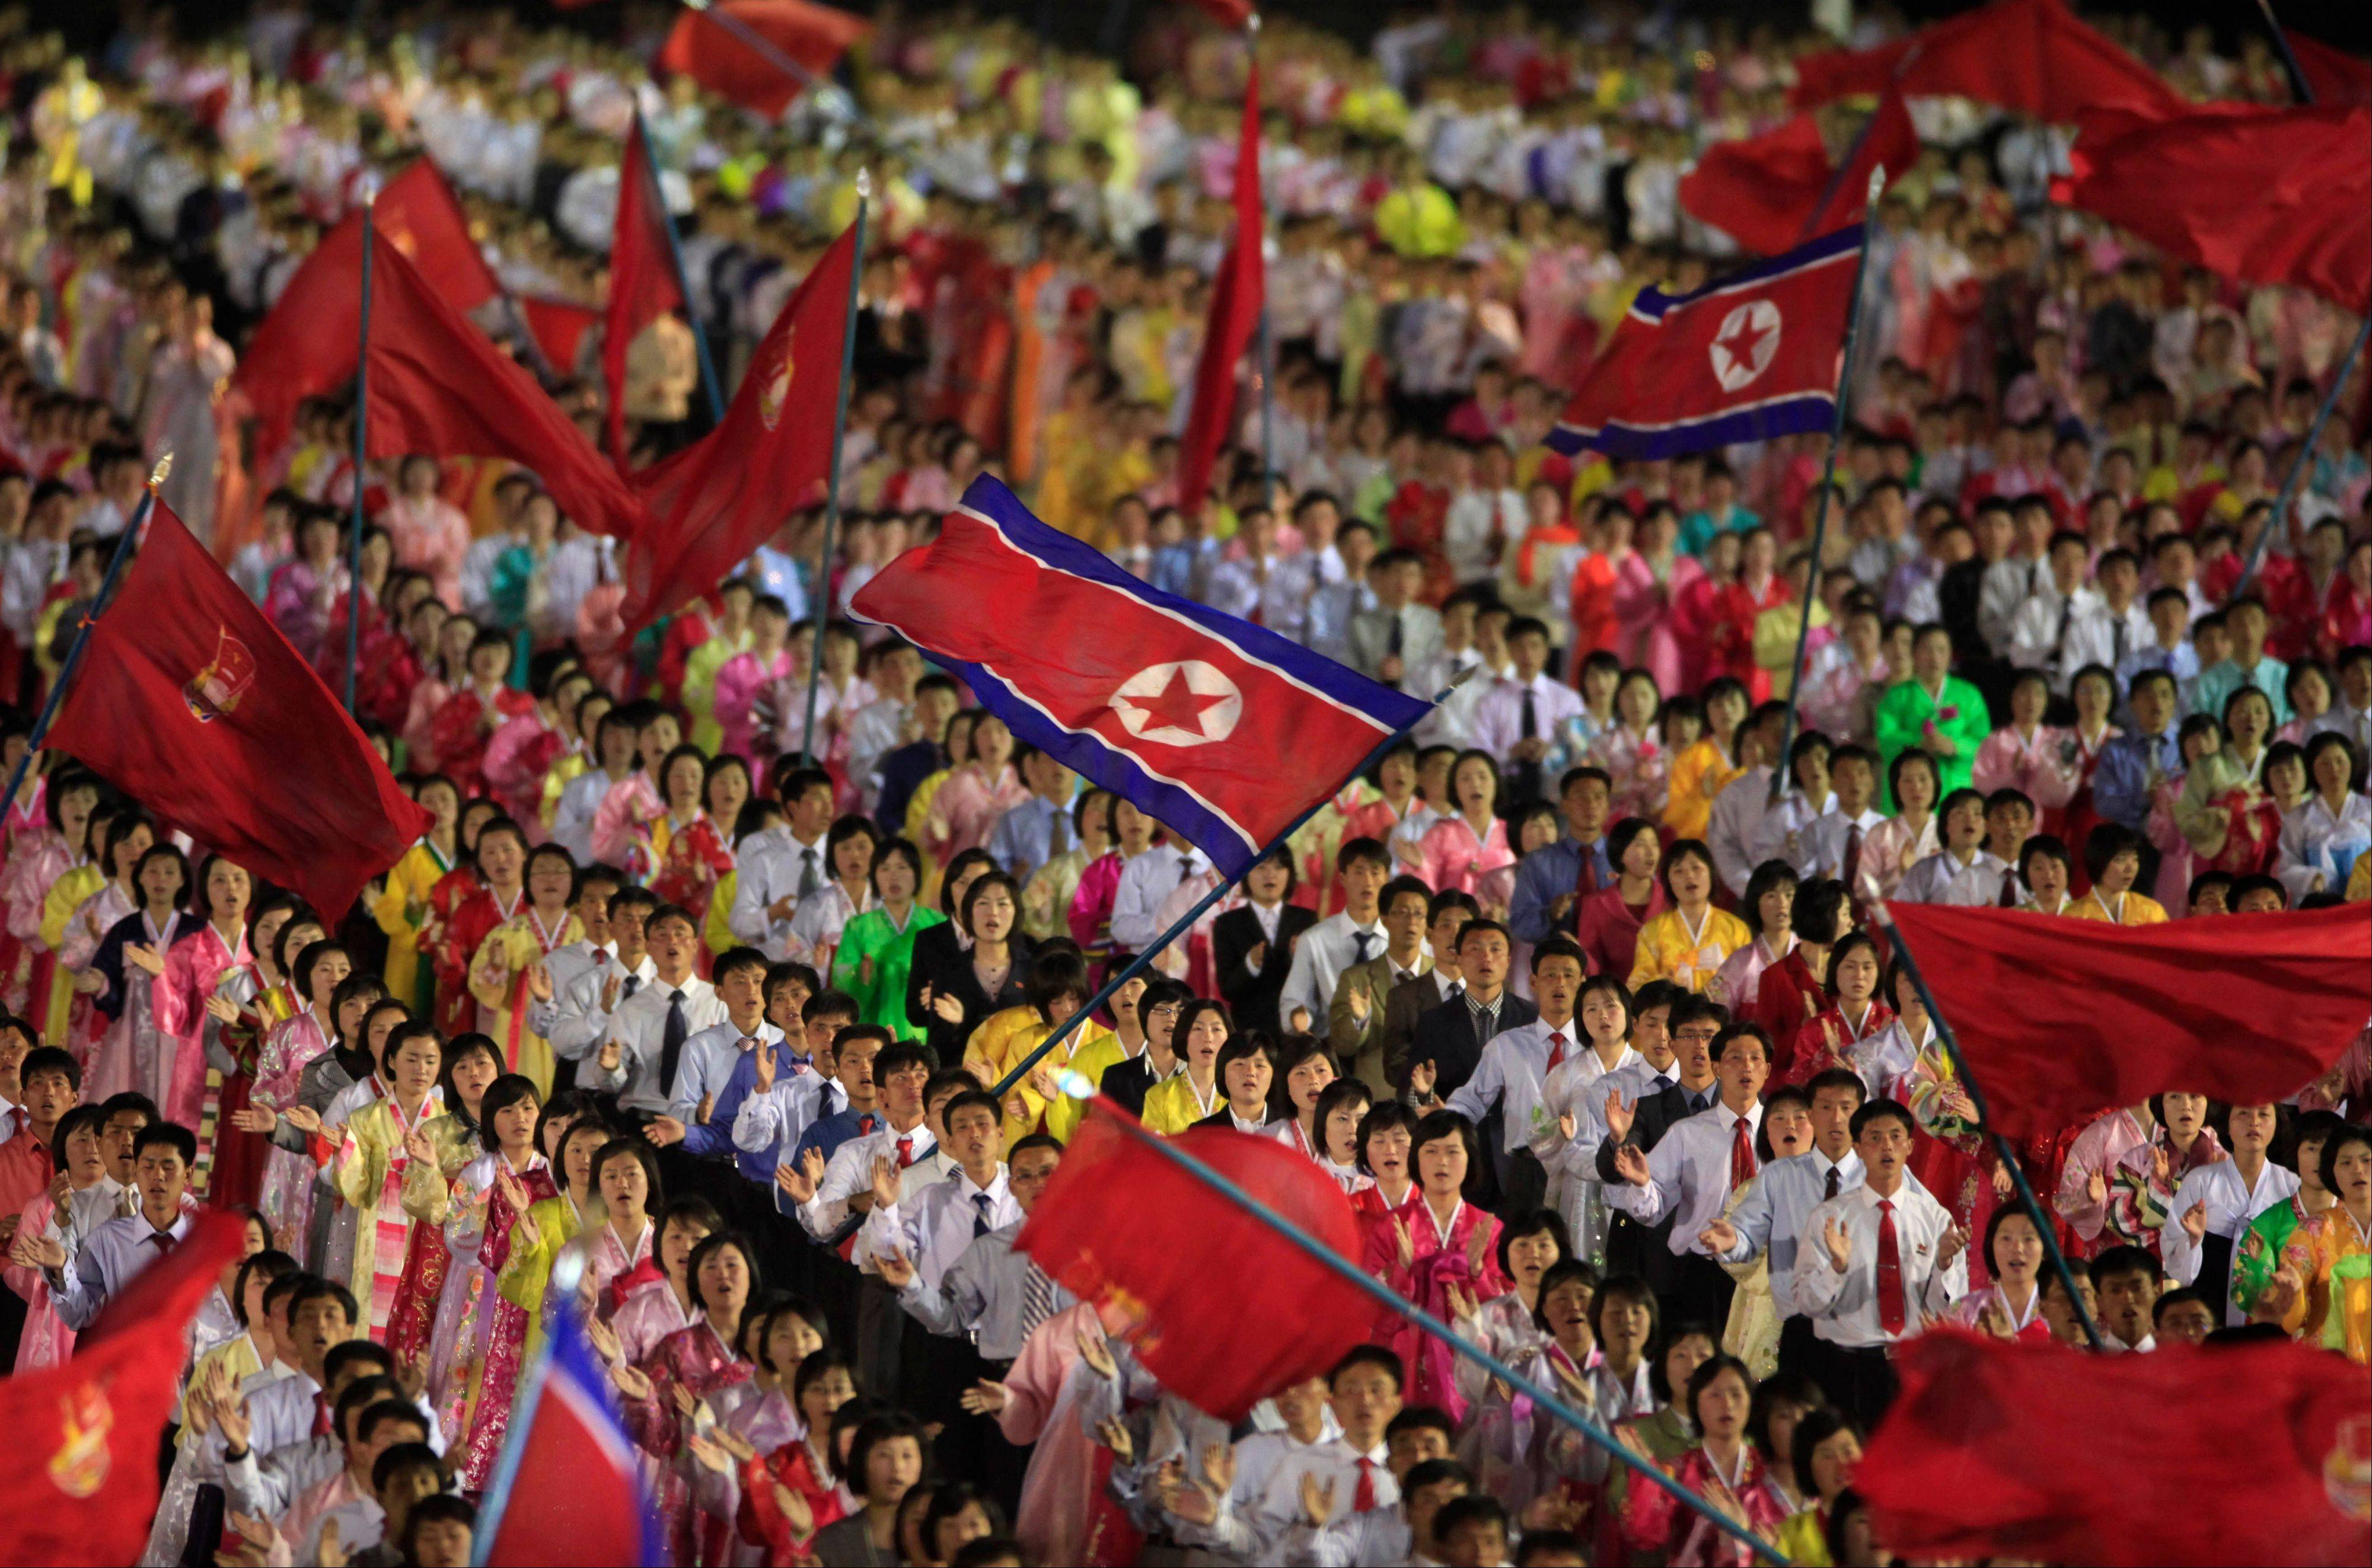 Students wave the national flags at an evening dancing party and performance at Kim Il Sung Square to commemorate late President Kim Il Sung's 100th birthday in Pyongyang, North Korea.